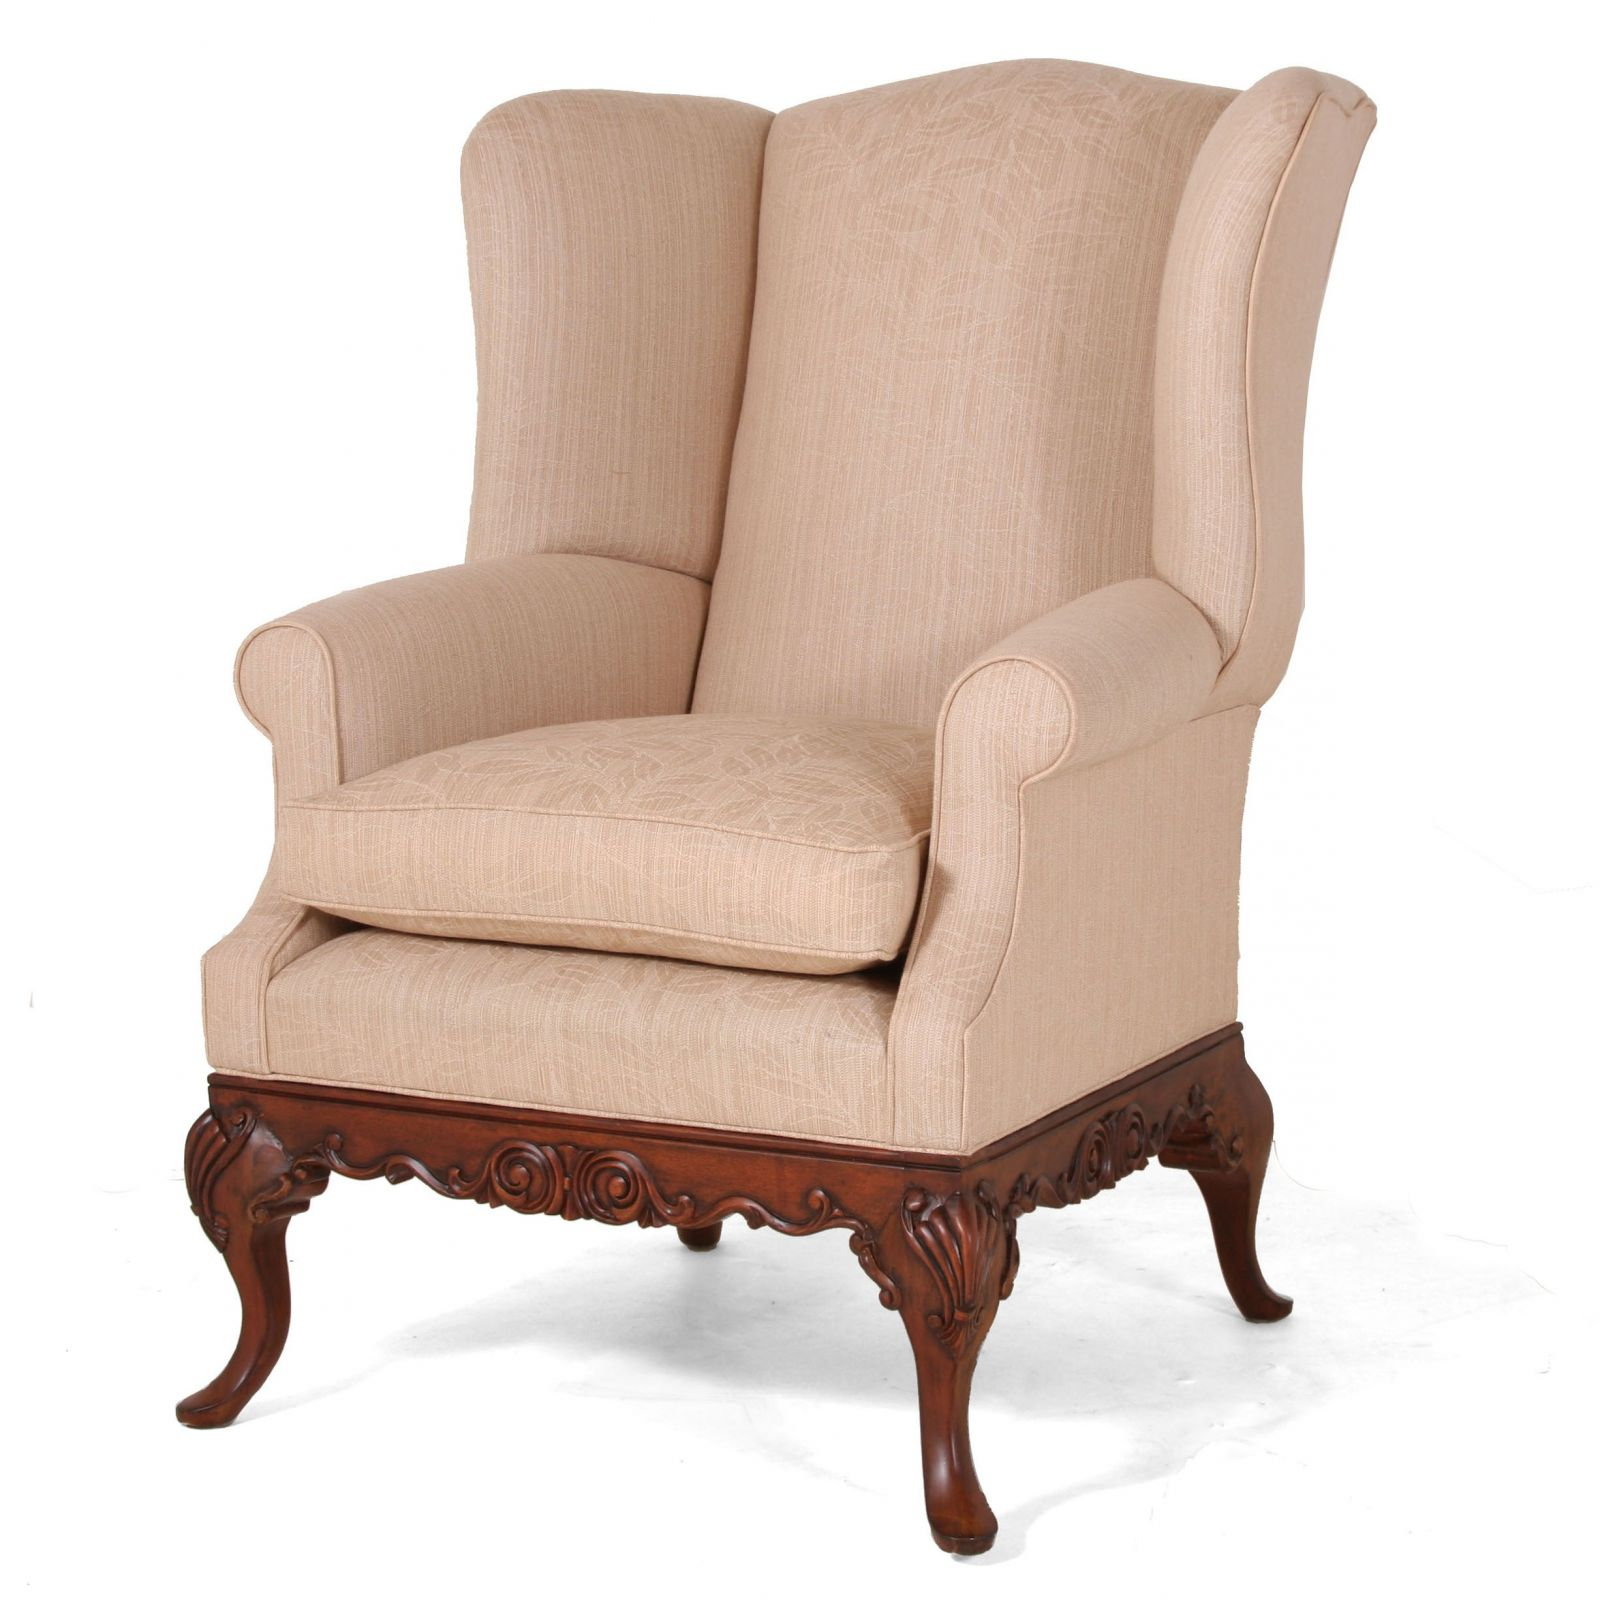 Sonning wing chair in Scottish Wool - Leaf Beige